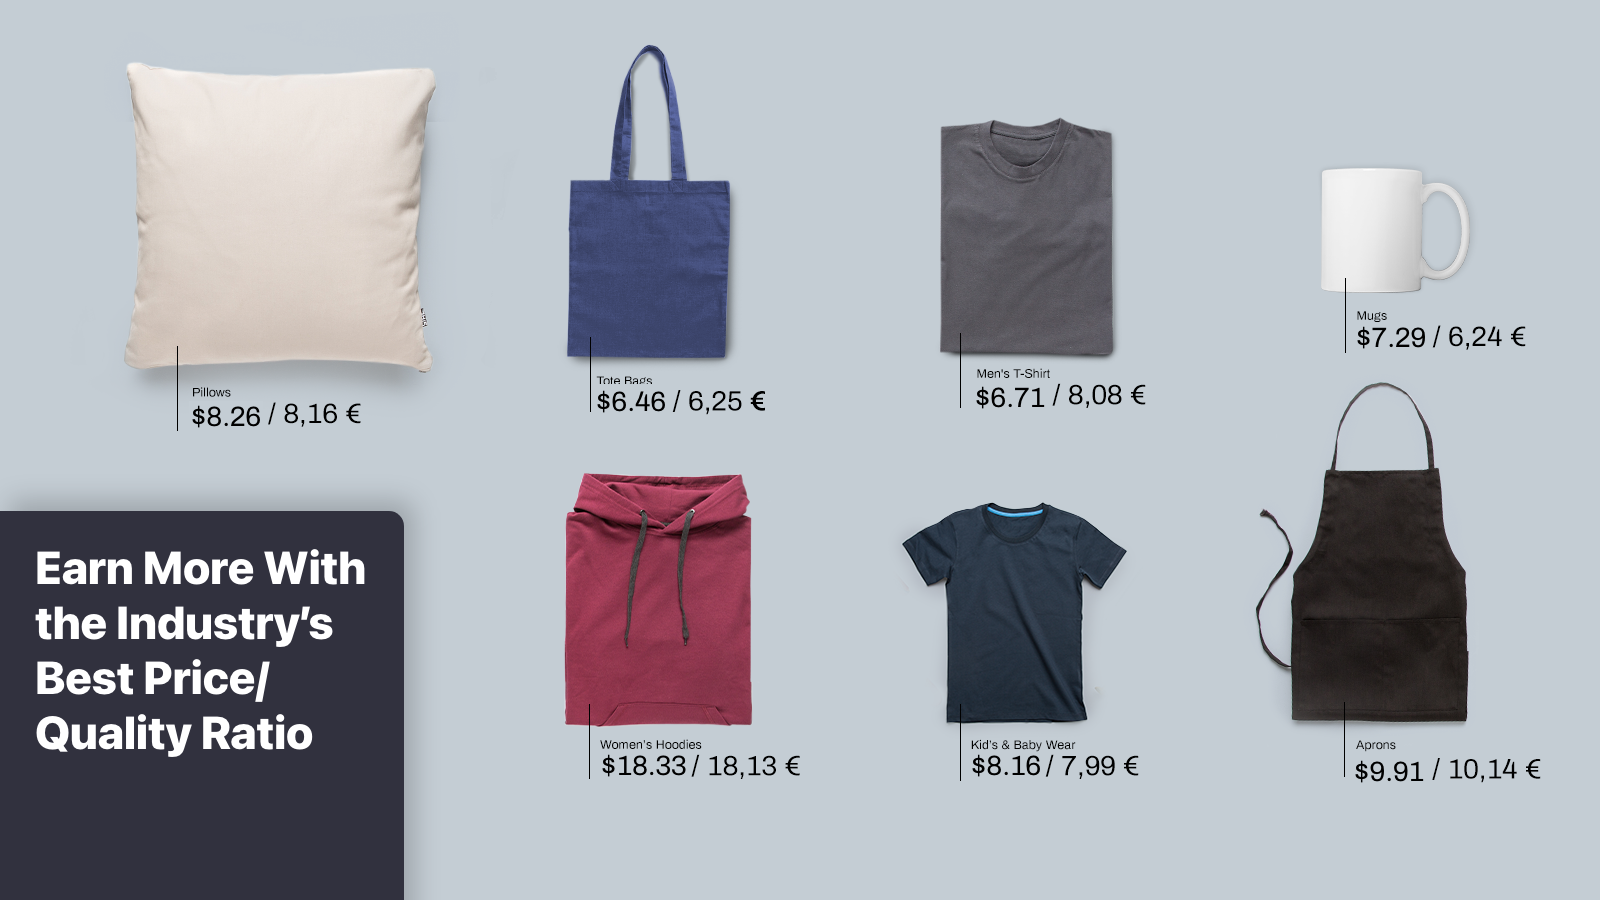 SPOD - Spreadshirt Print On Demand: The Industry's Best Prices